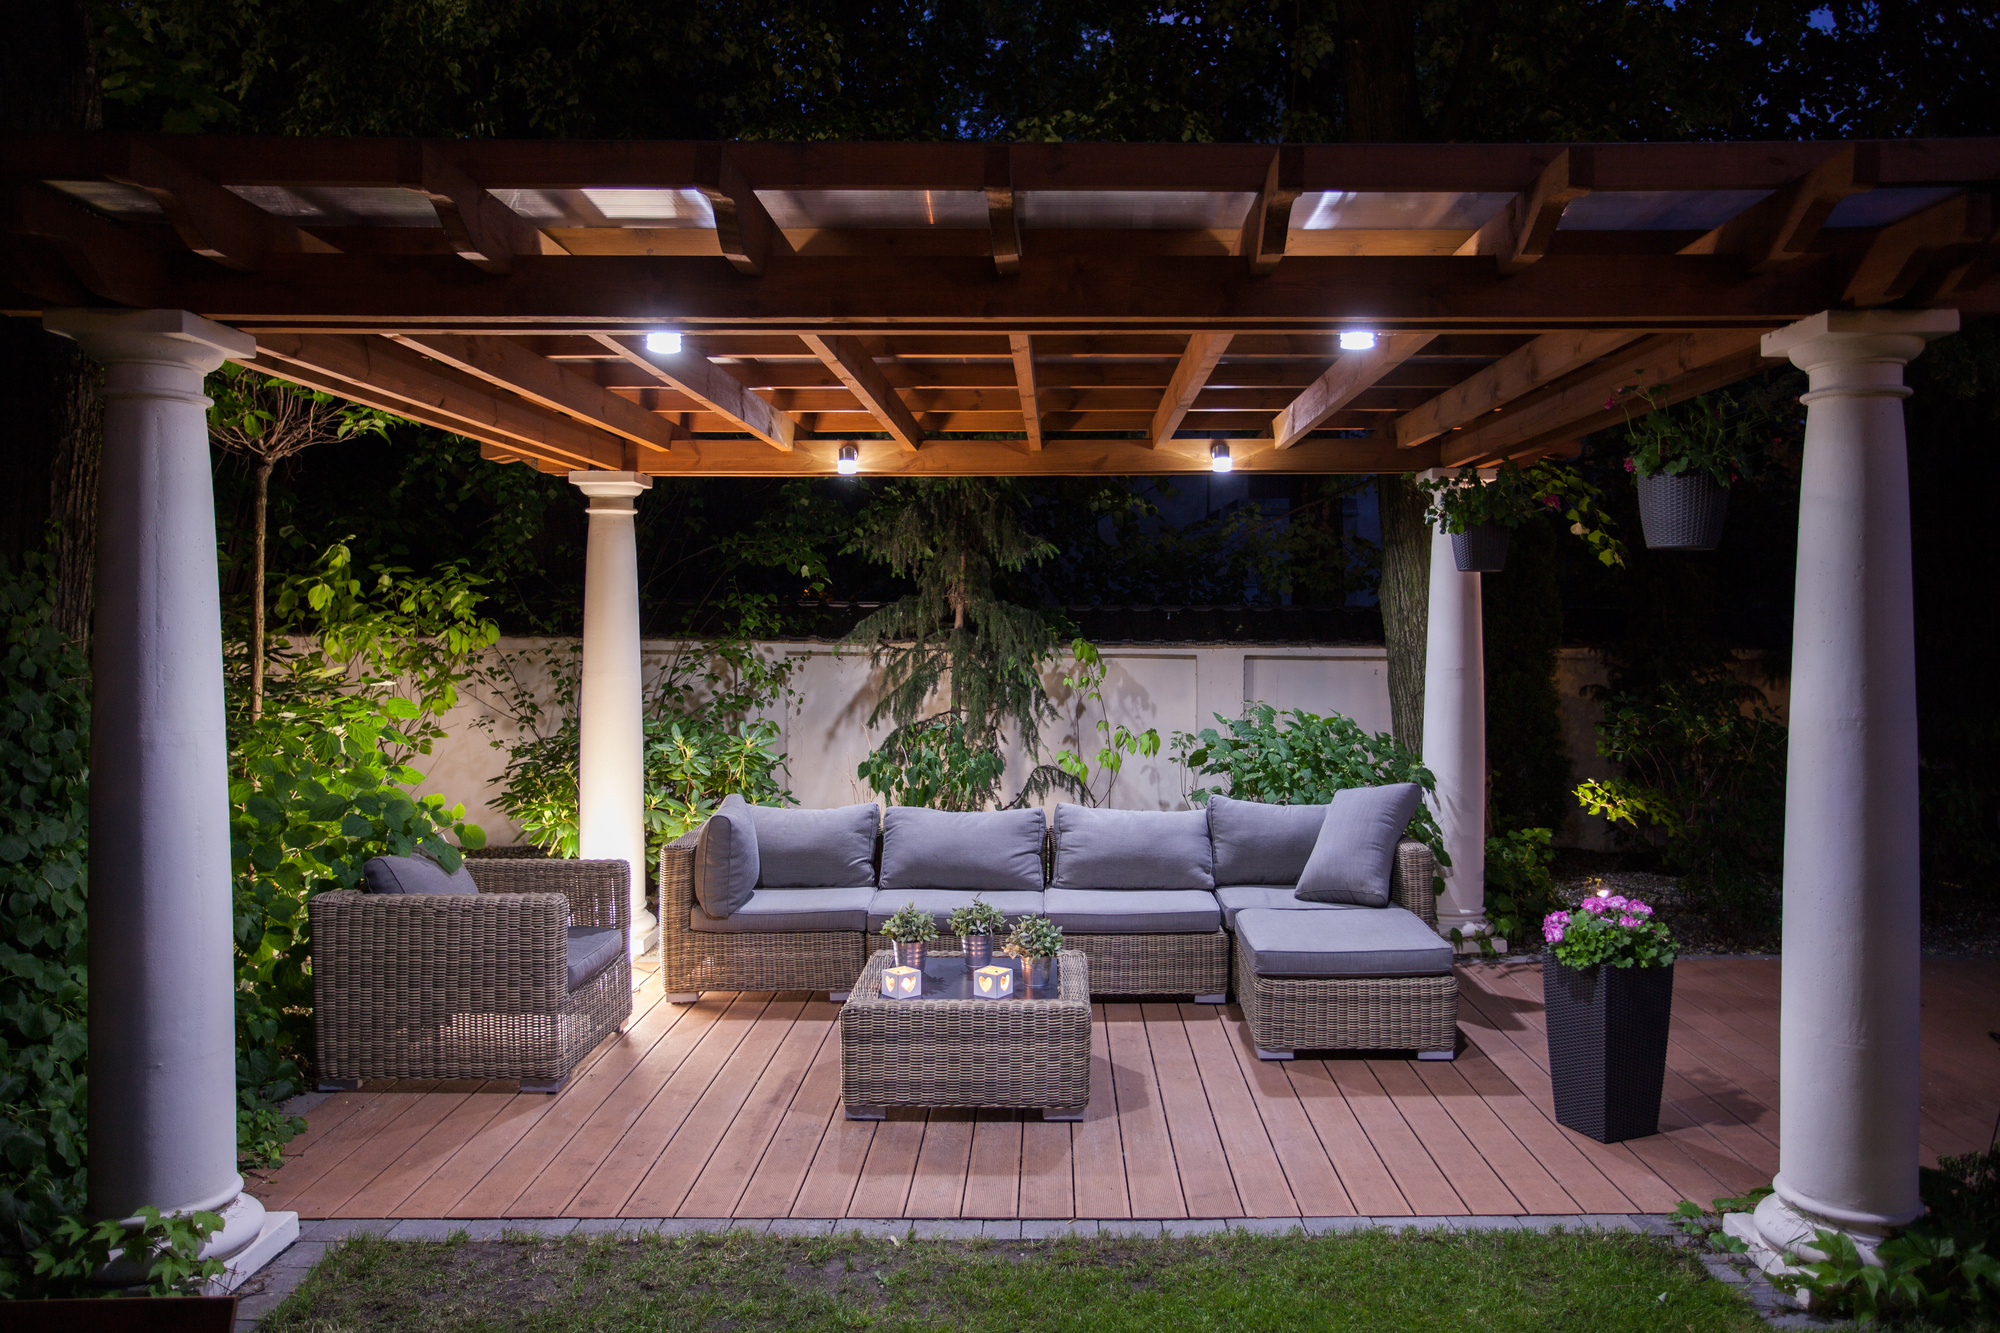 7 affordable outdoor lighting ideas to transform your backyard